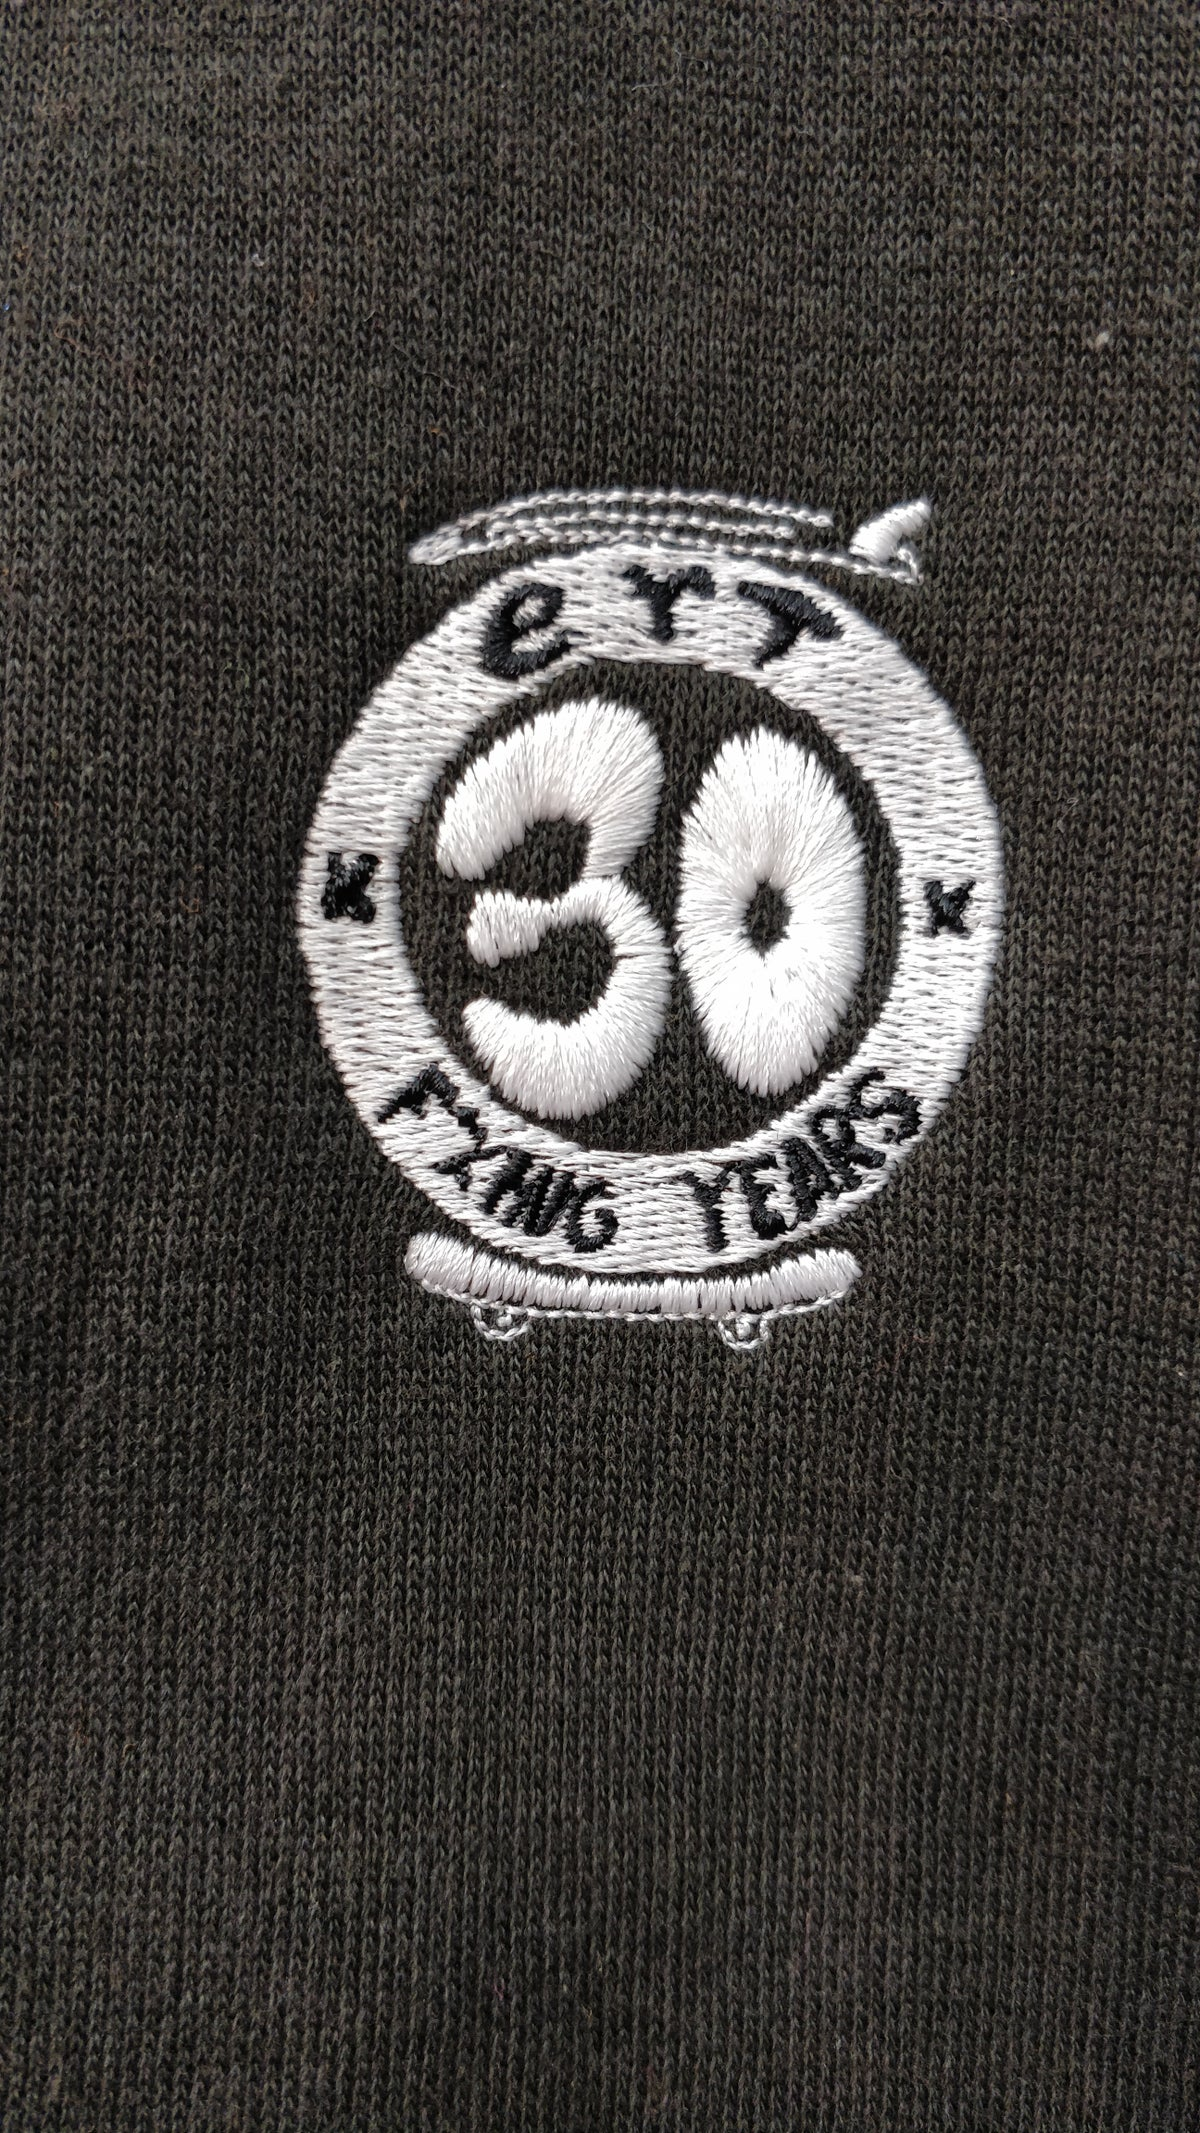 Image of SUDADERA ERT 30 YEARS X JAVI CORELLANO